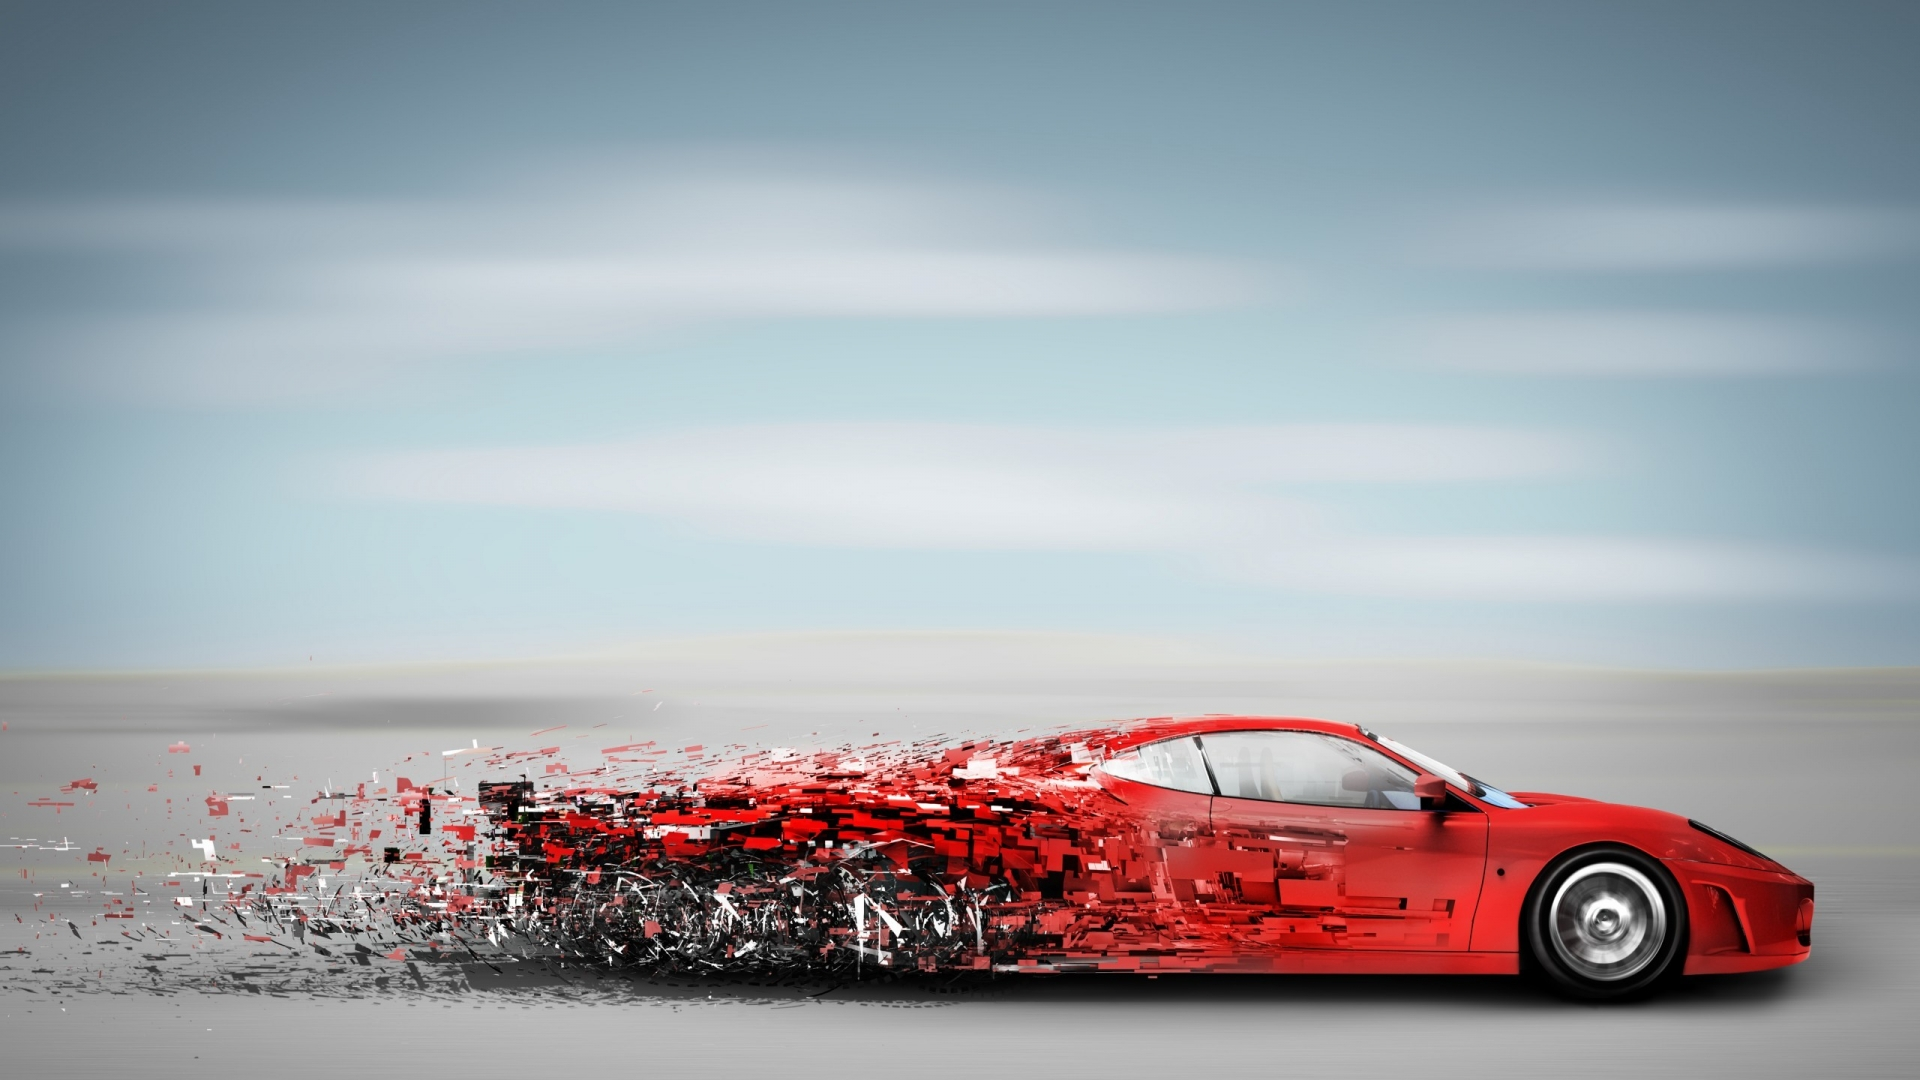 Abstract Red Speedy Car Sport Car Wallpaper Wallpaper